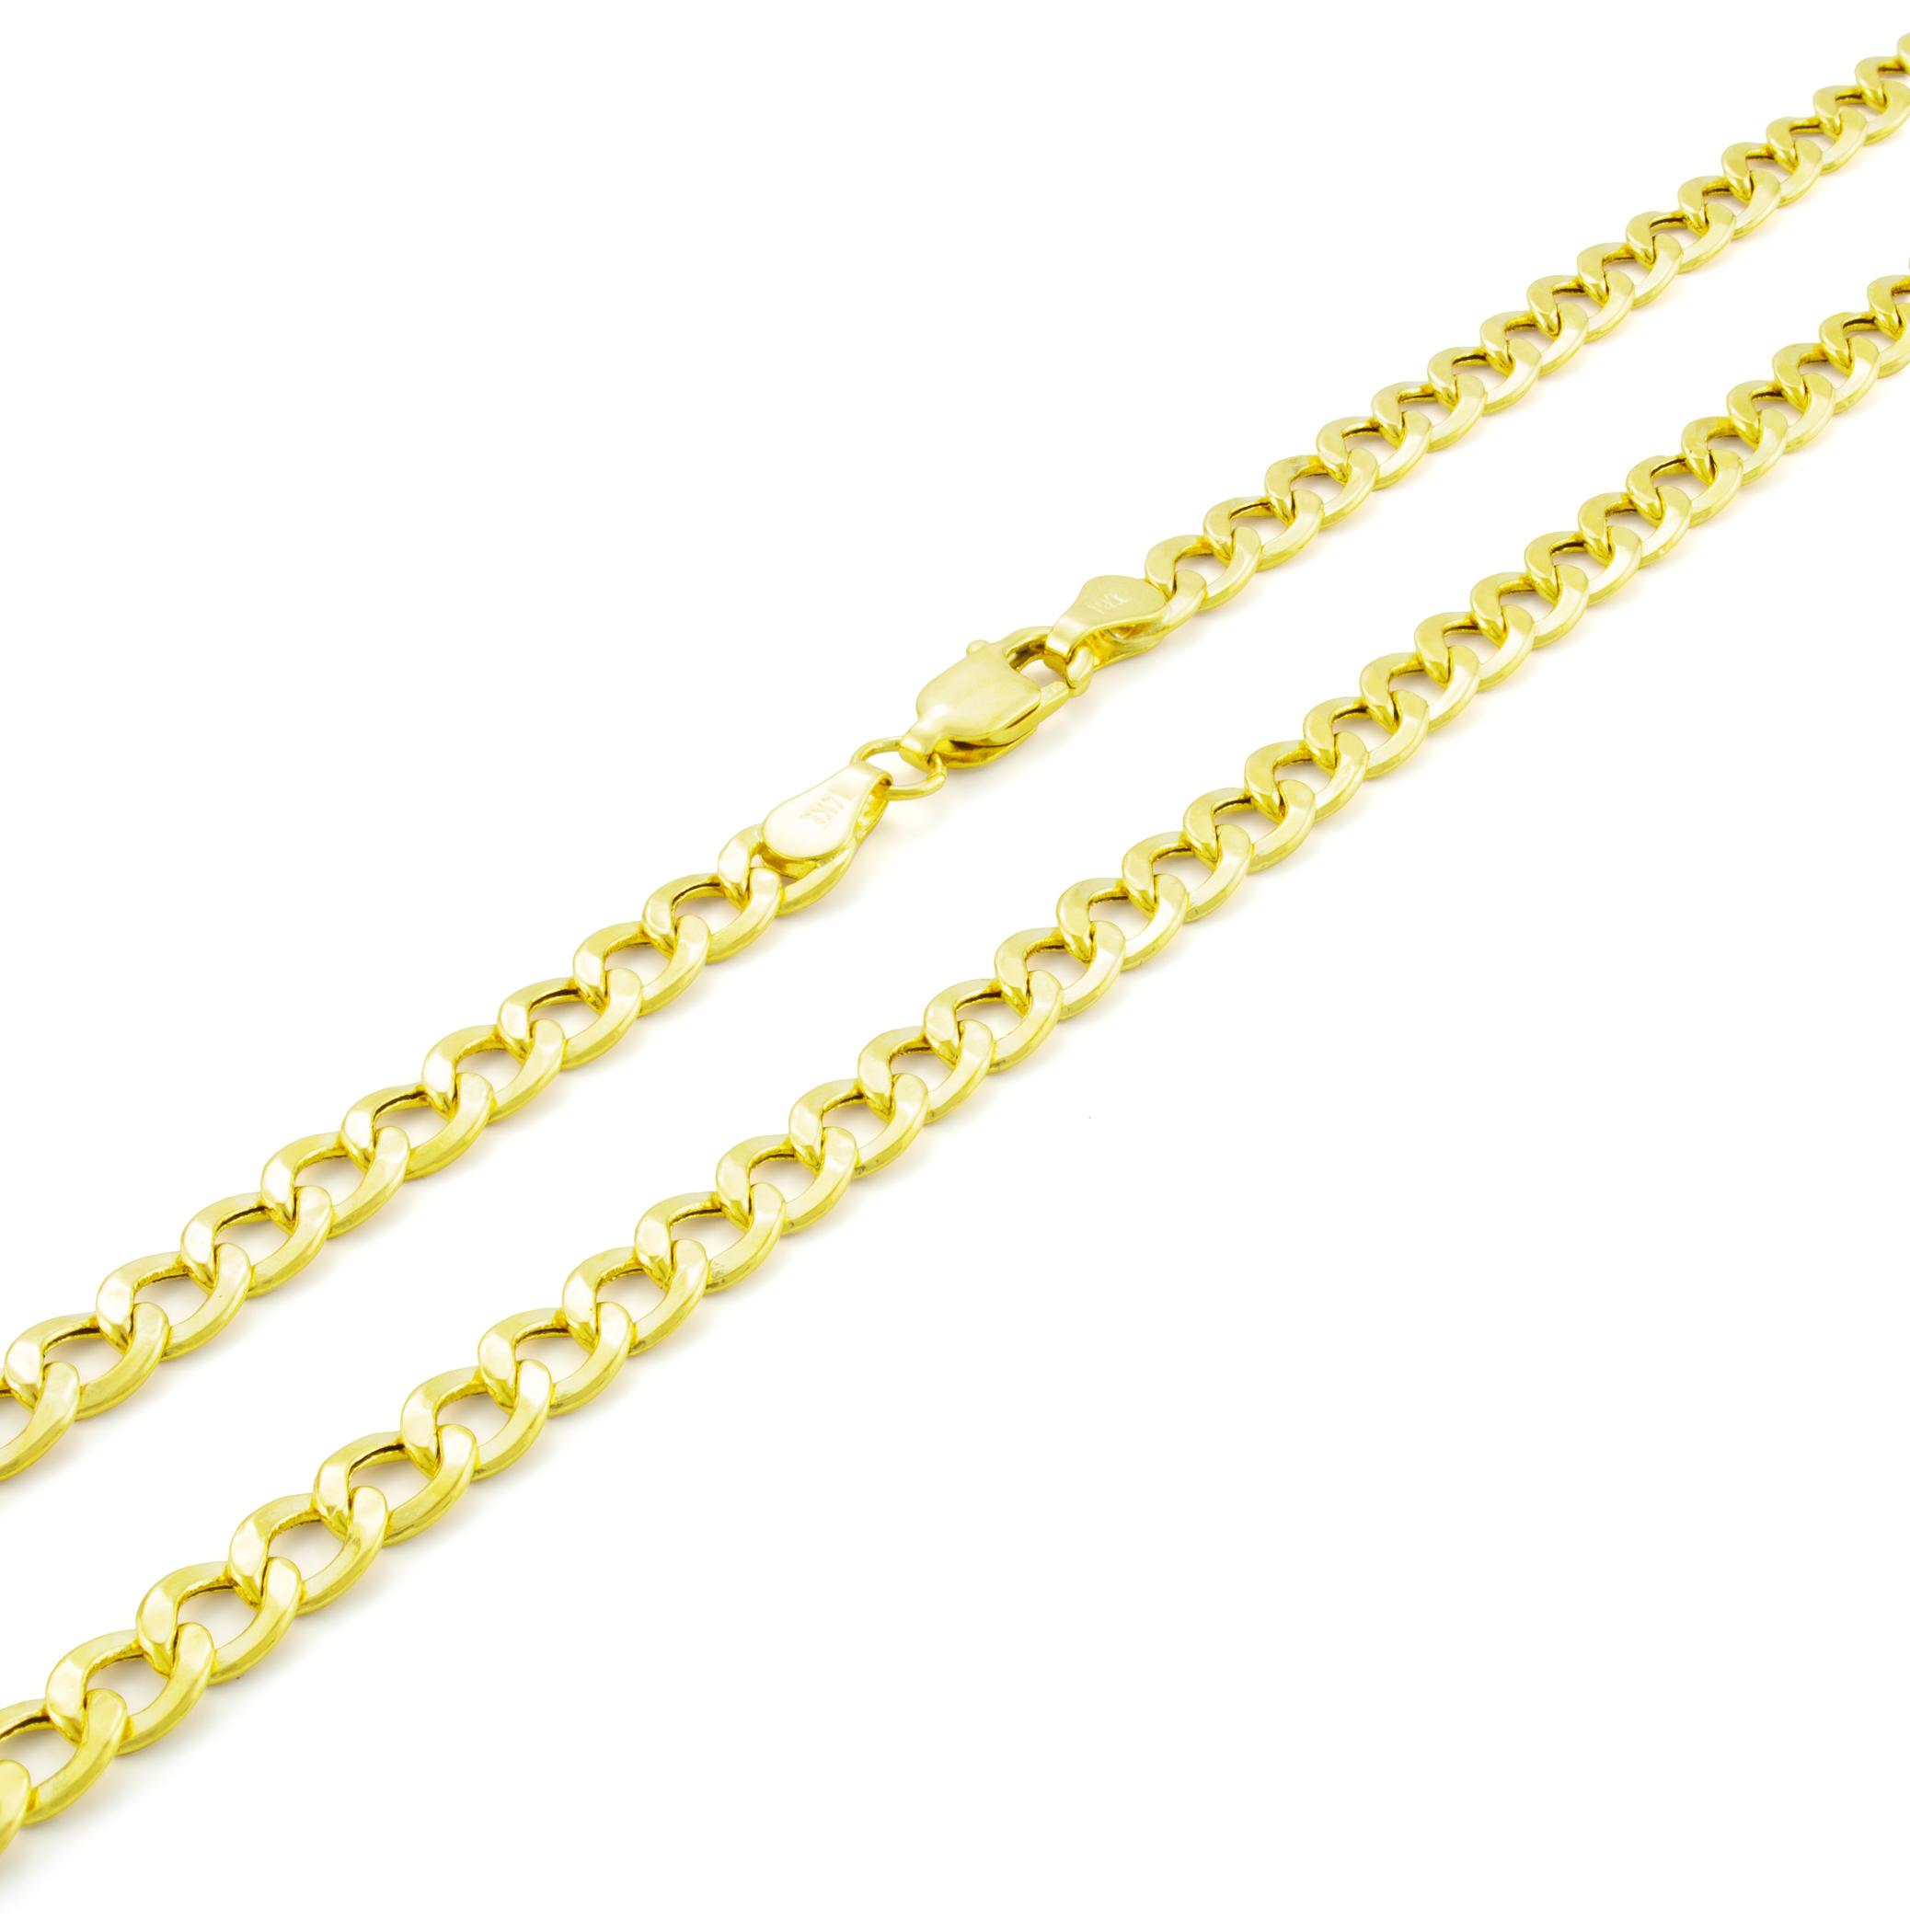 Real-14K-Yellow-Gold-4-5mm-Cuban-Curb-Chain-Link-Bracelet-Anklet-Chain-7-034-8-034-9-034 thumbnail 17